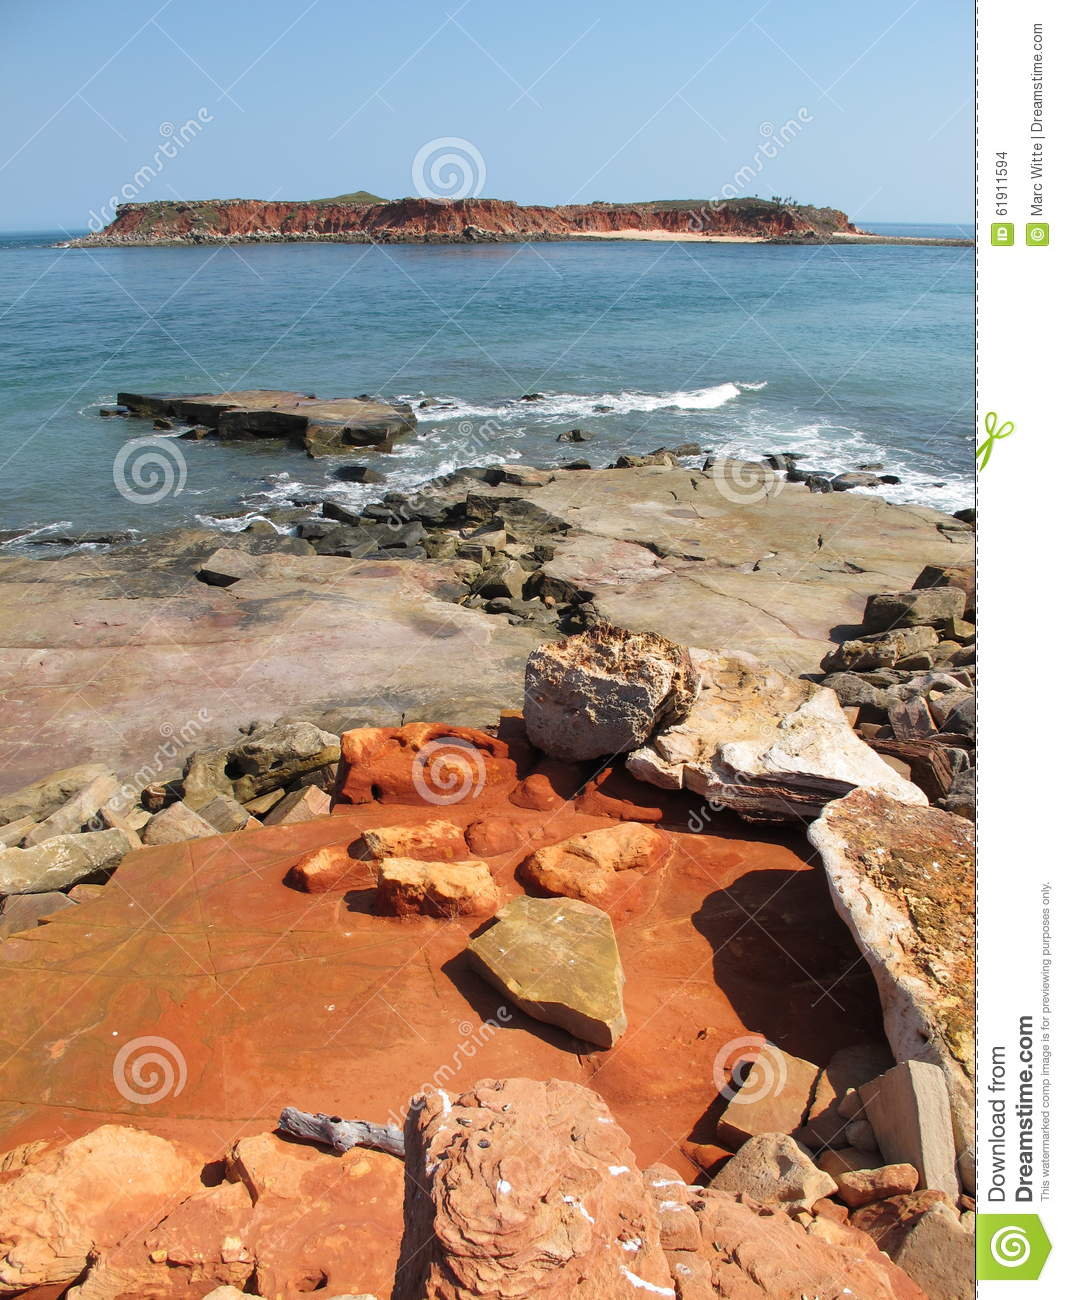 Cape Leveque Australia  city photos gallery : Cape Leveque, Western Australia Stock Photo Image: 61911594